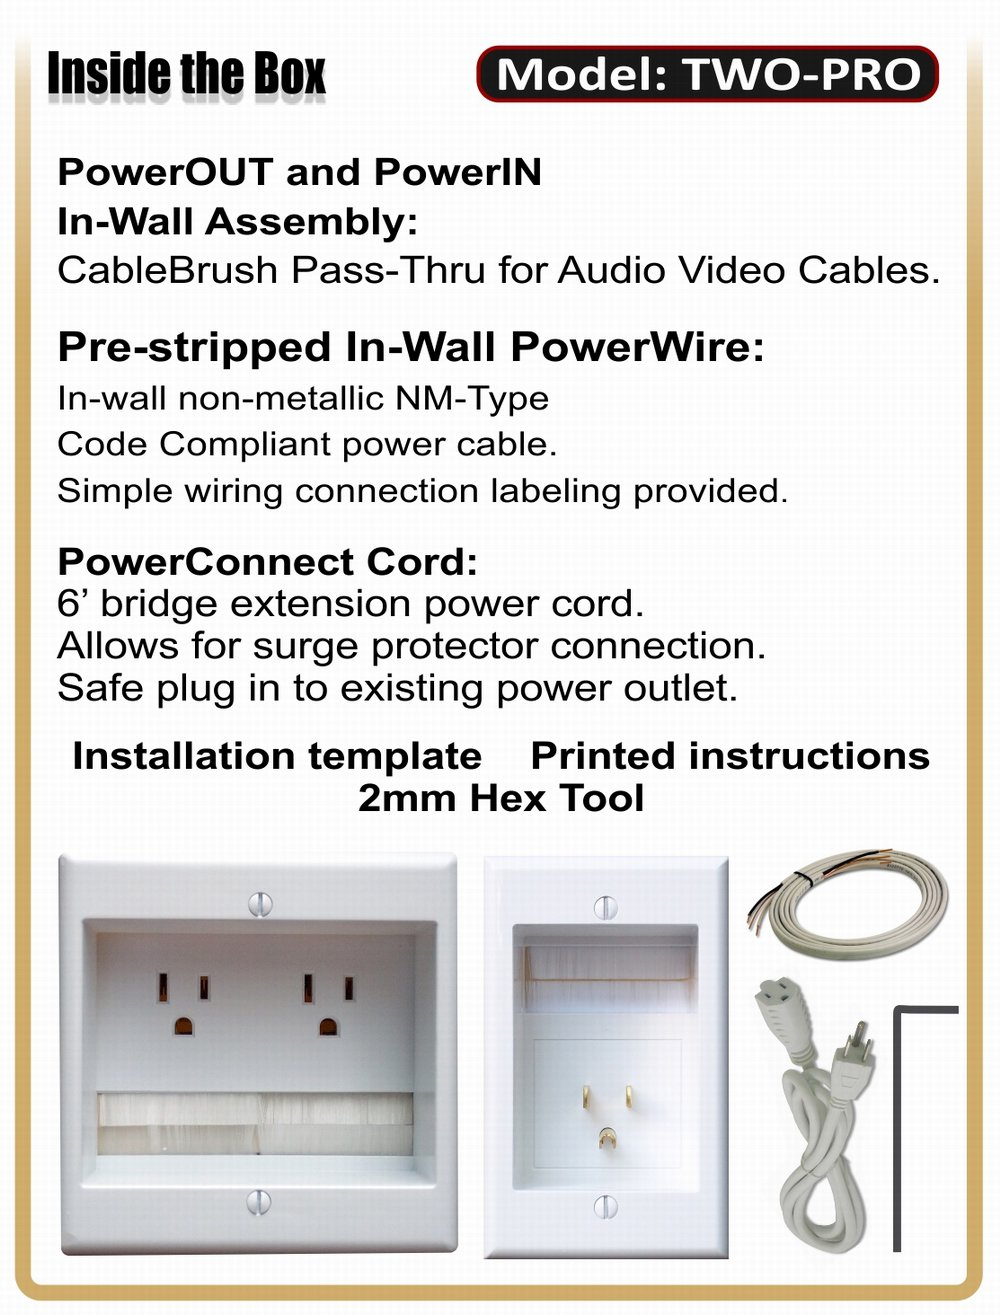 PowerBridge TWO-PRO-6 Dual Power Outlet Professional Grade Recessed In-Wall Cable Management System for Wall-Mounted Flat Screen LED, LCD, and Plasma TV's by PowerBridge Solutions (Image #6)